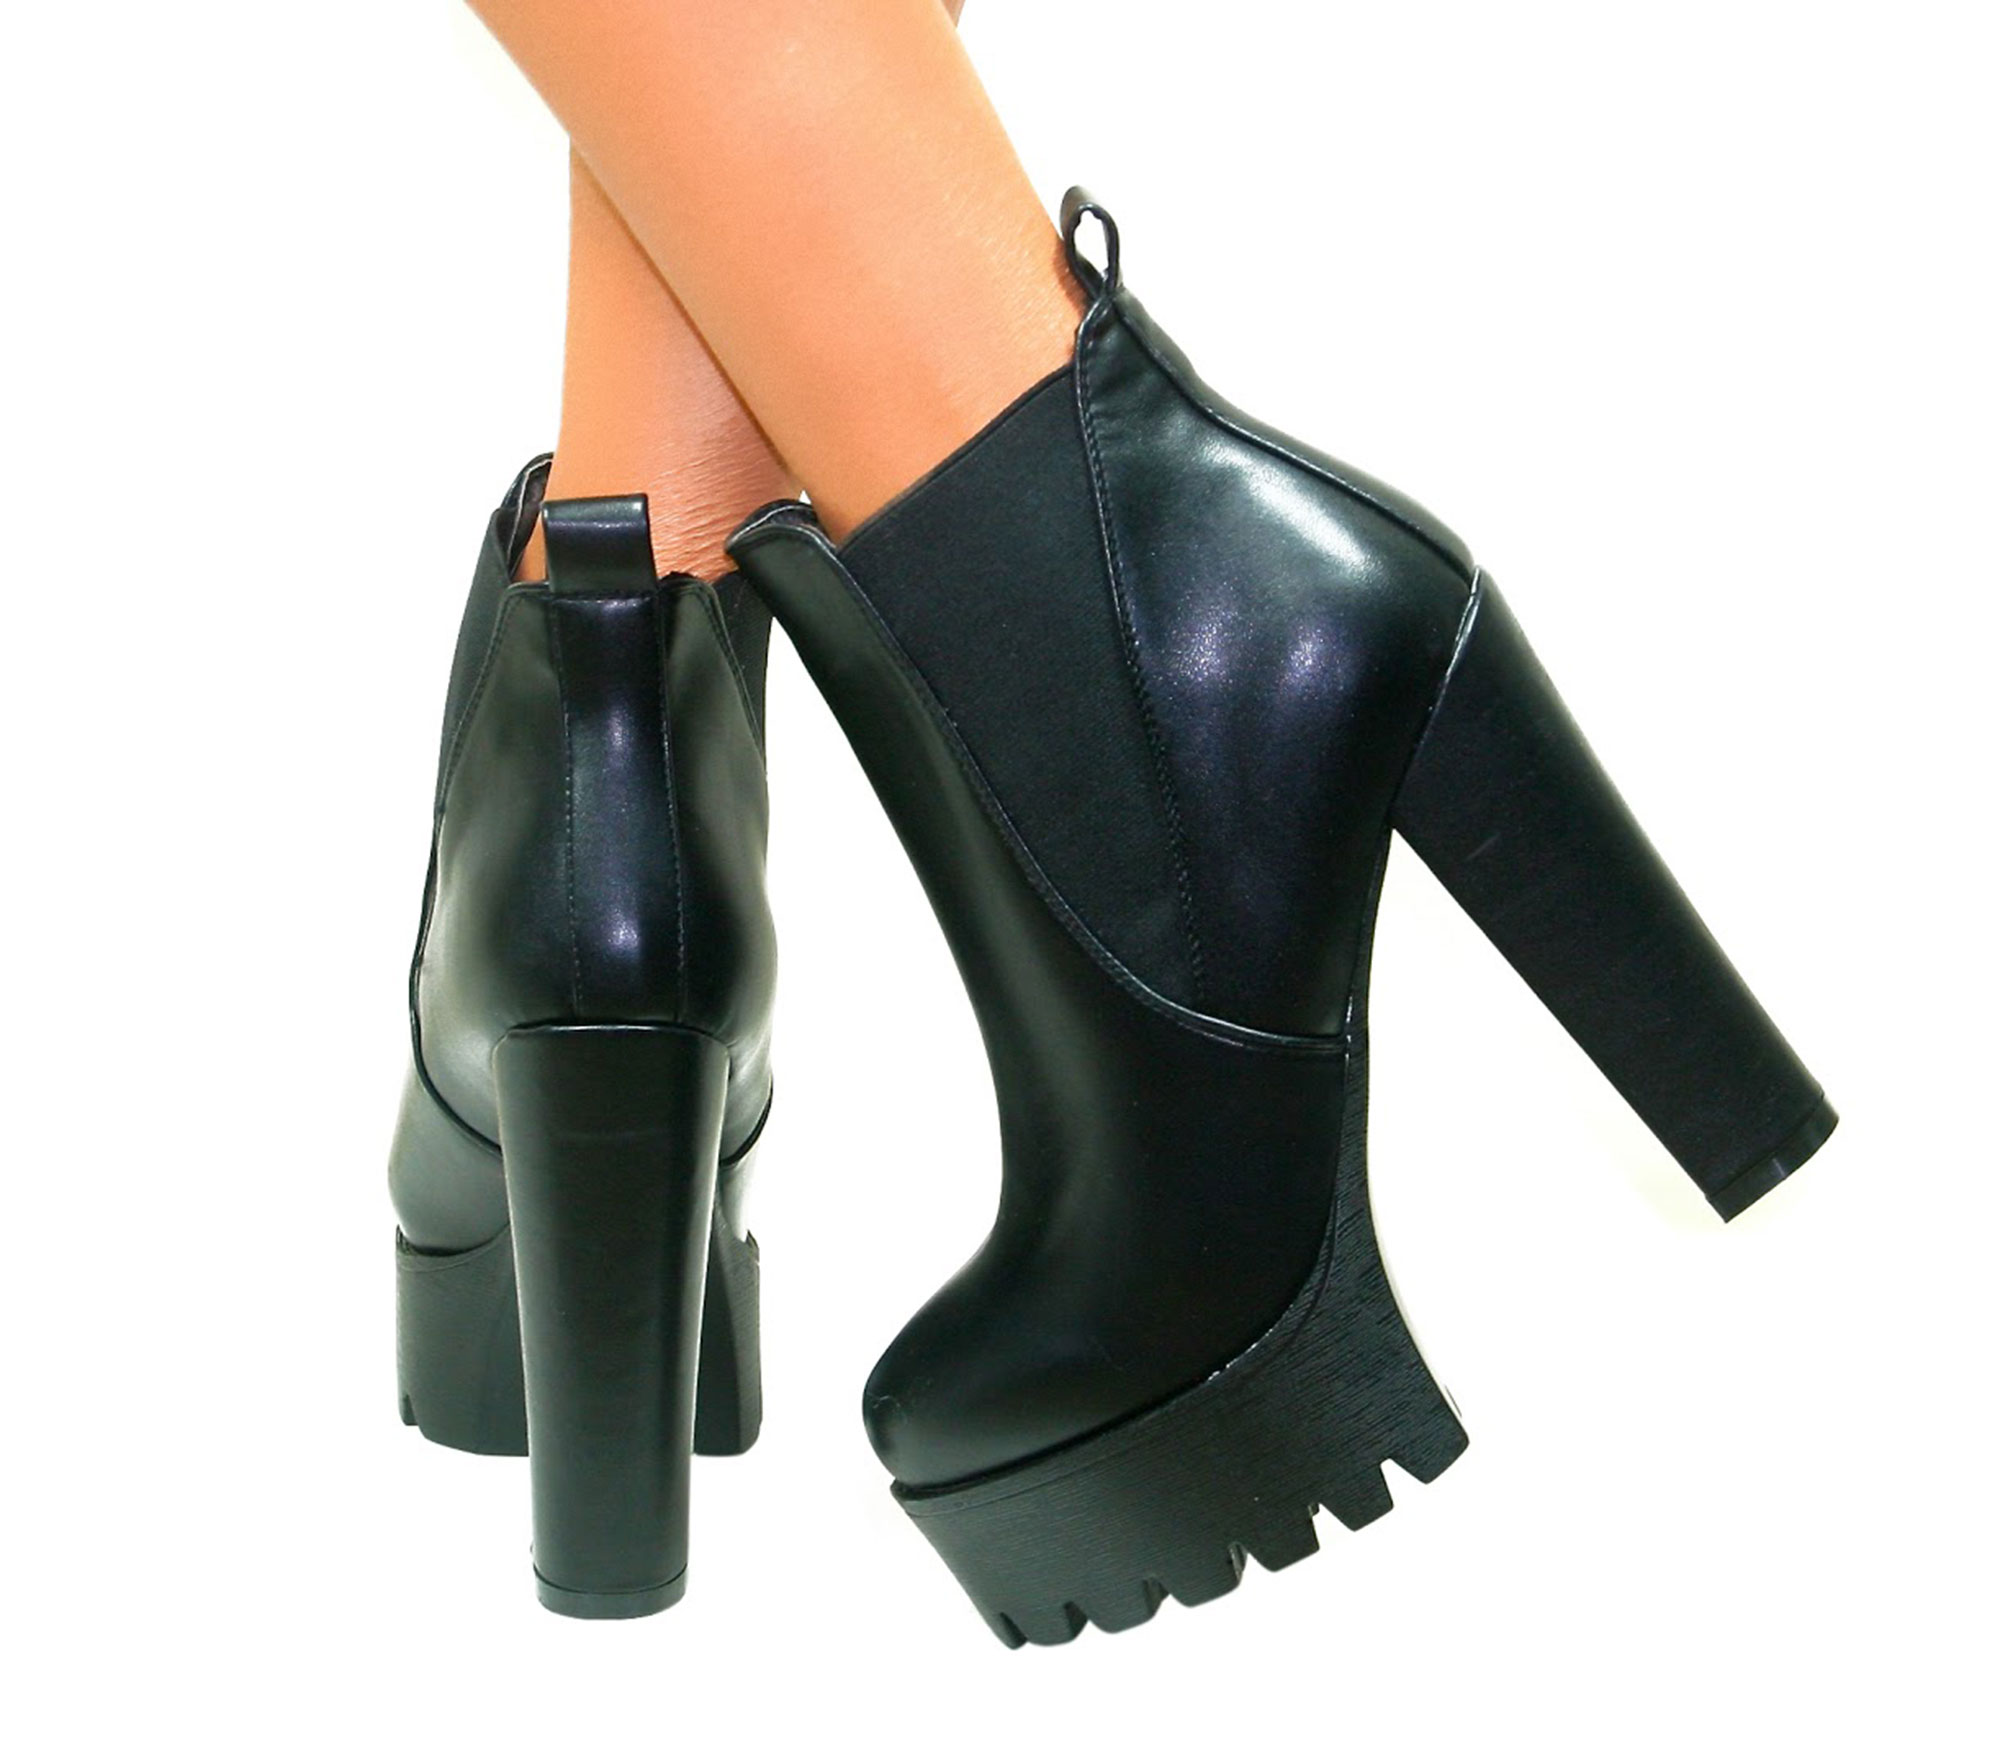 WOMENS LADIES CHUNKY CLEATED PLATFORM HIGH BLOCK HEELS ANKLE BOOTS SHOES SIZE